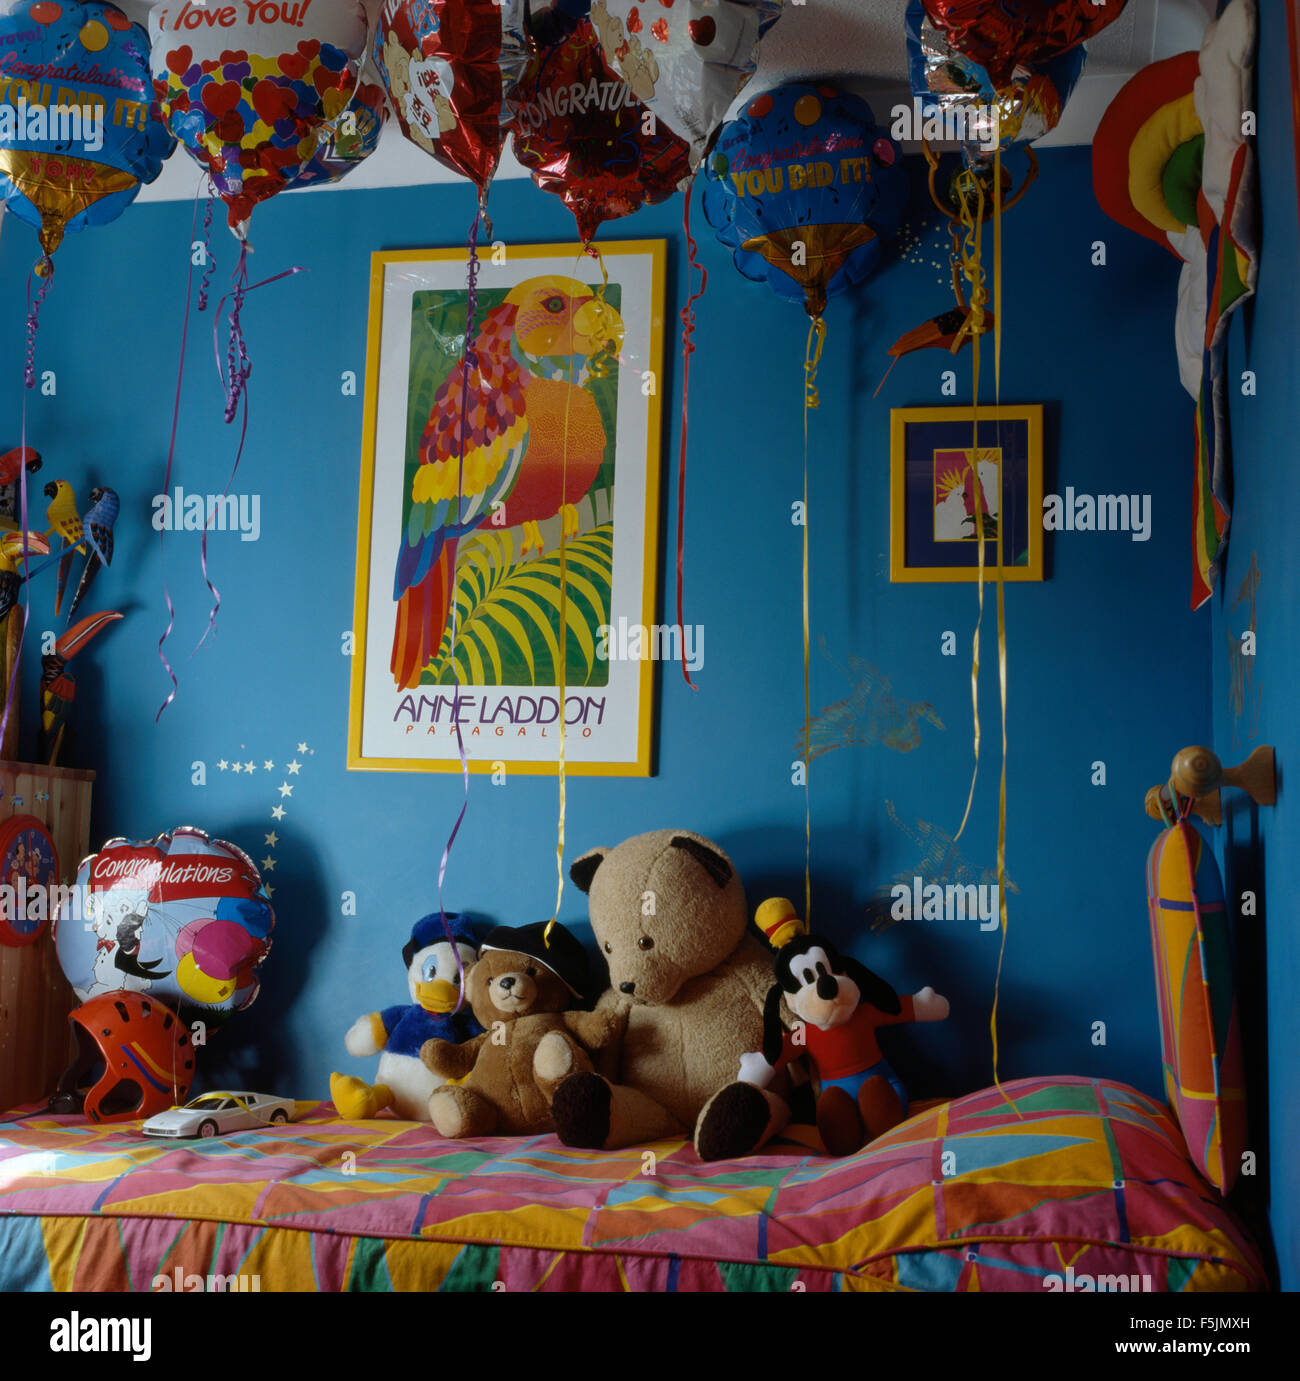 balloons above bed with soft toys in a child s blue nineties bedroom